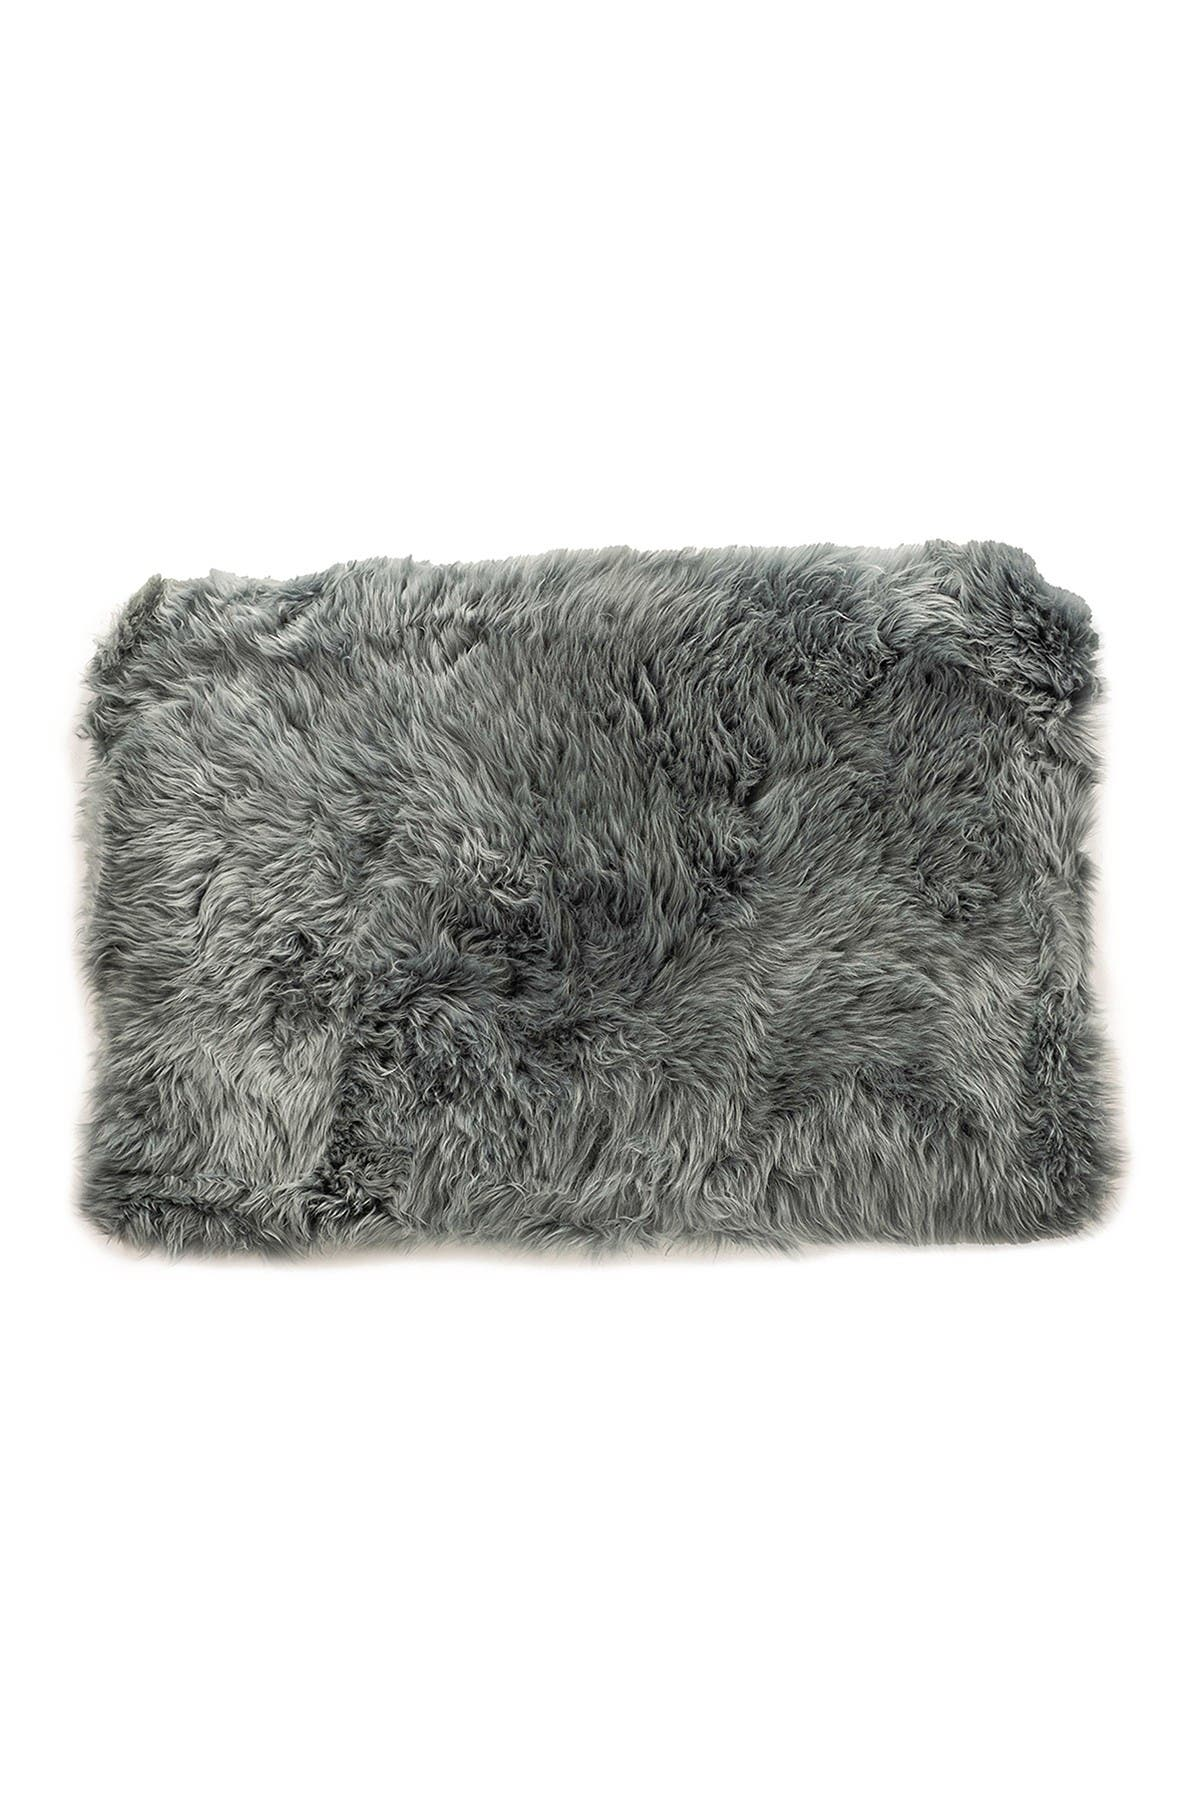 Image of Natural New Zealand Rectangular Sheepskin Throw - 2ft X 3ft - Grey